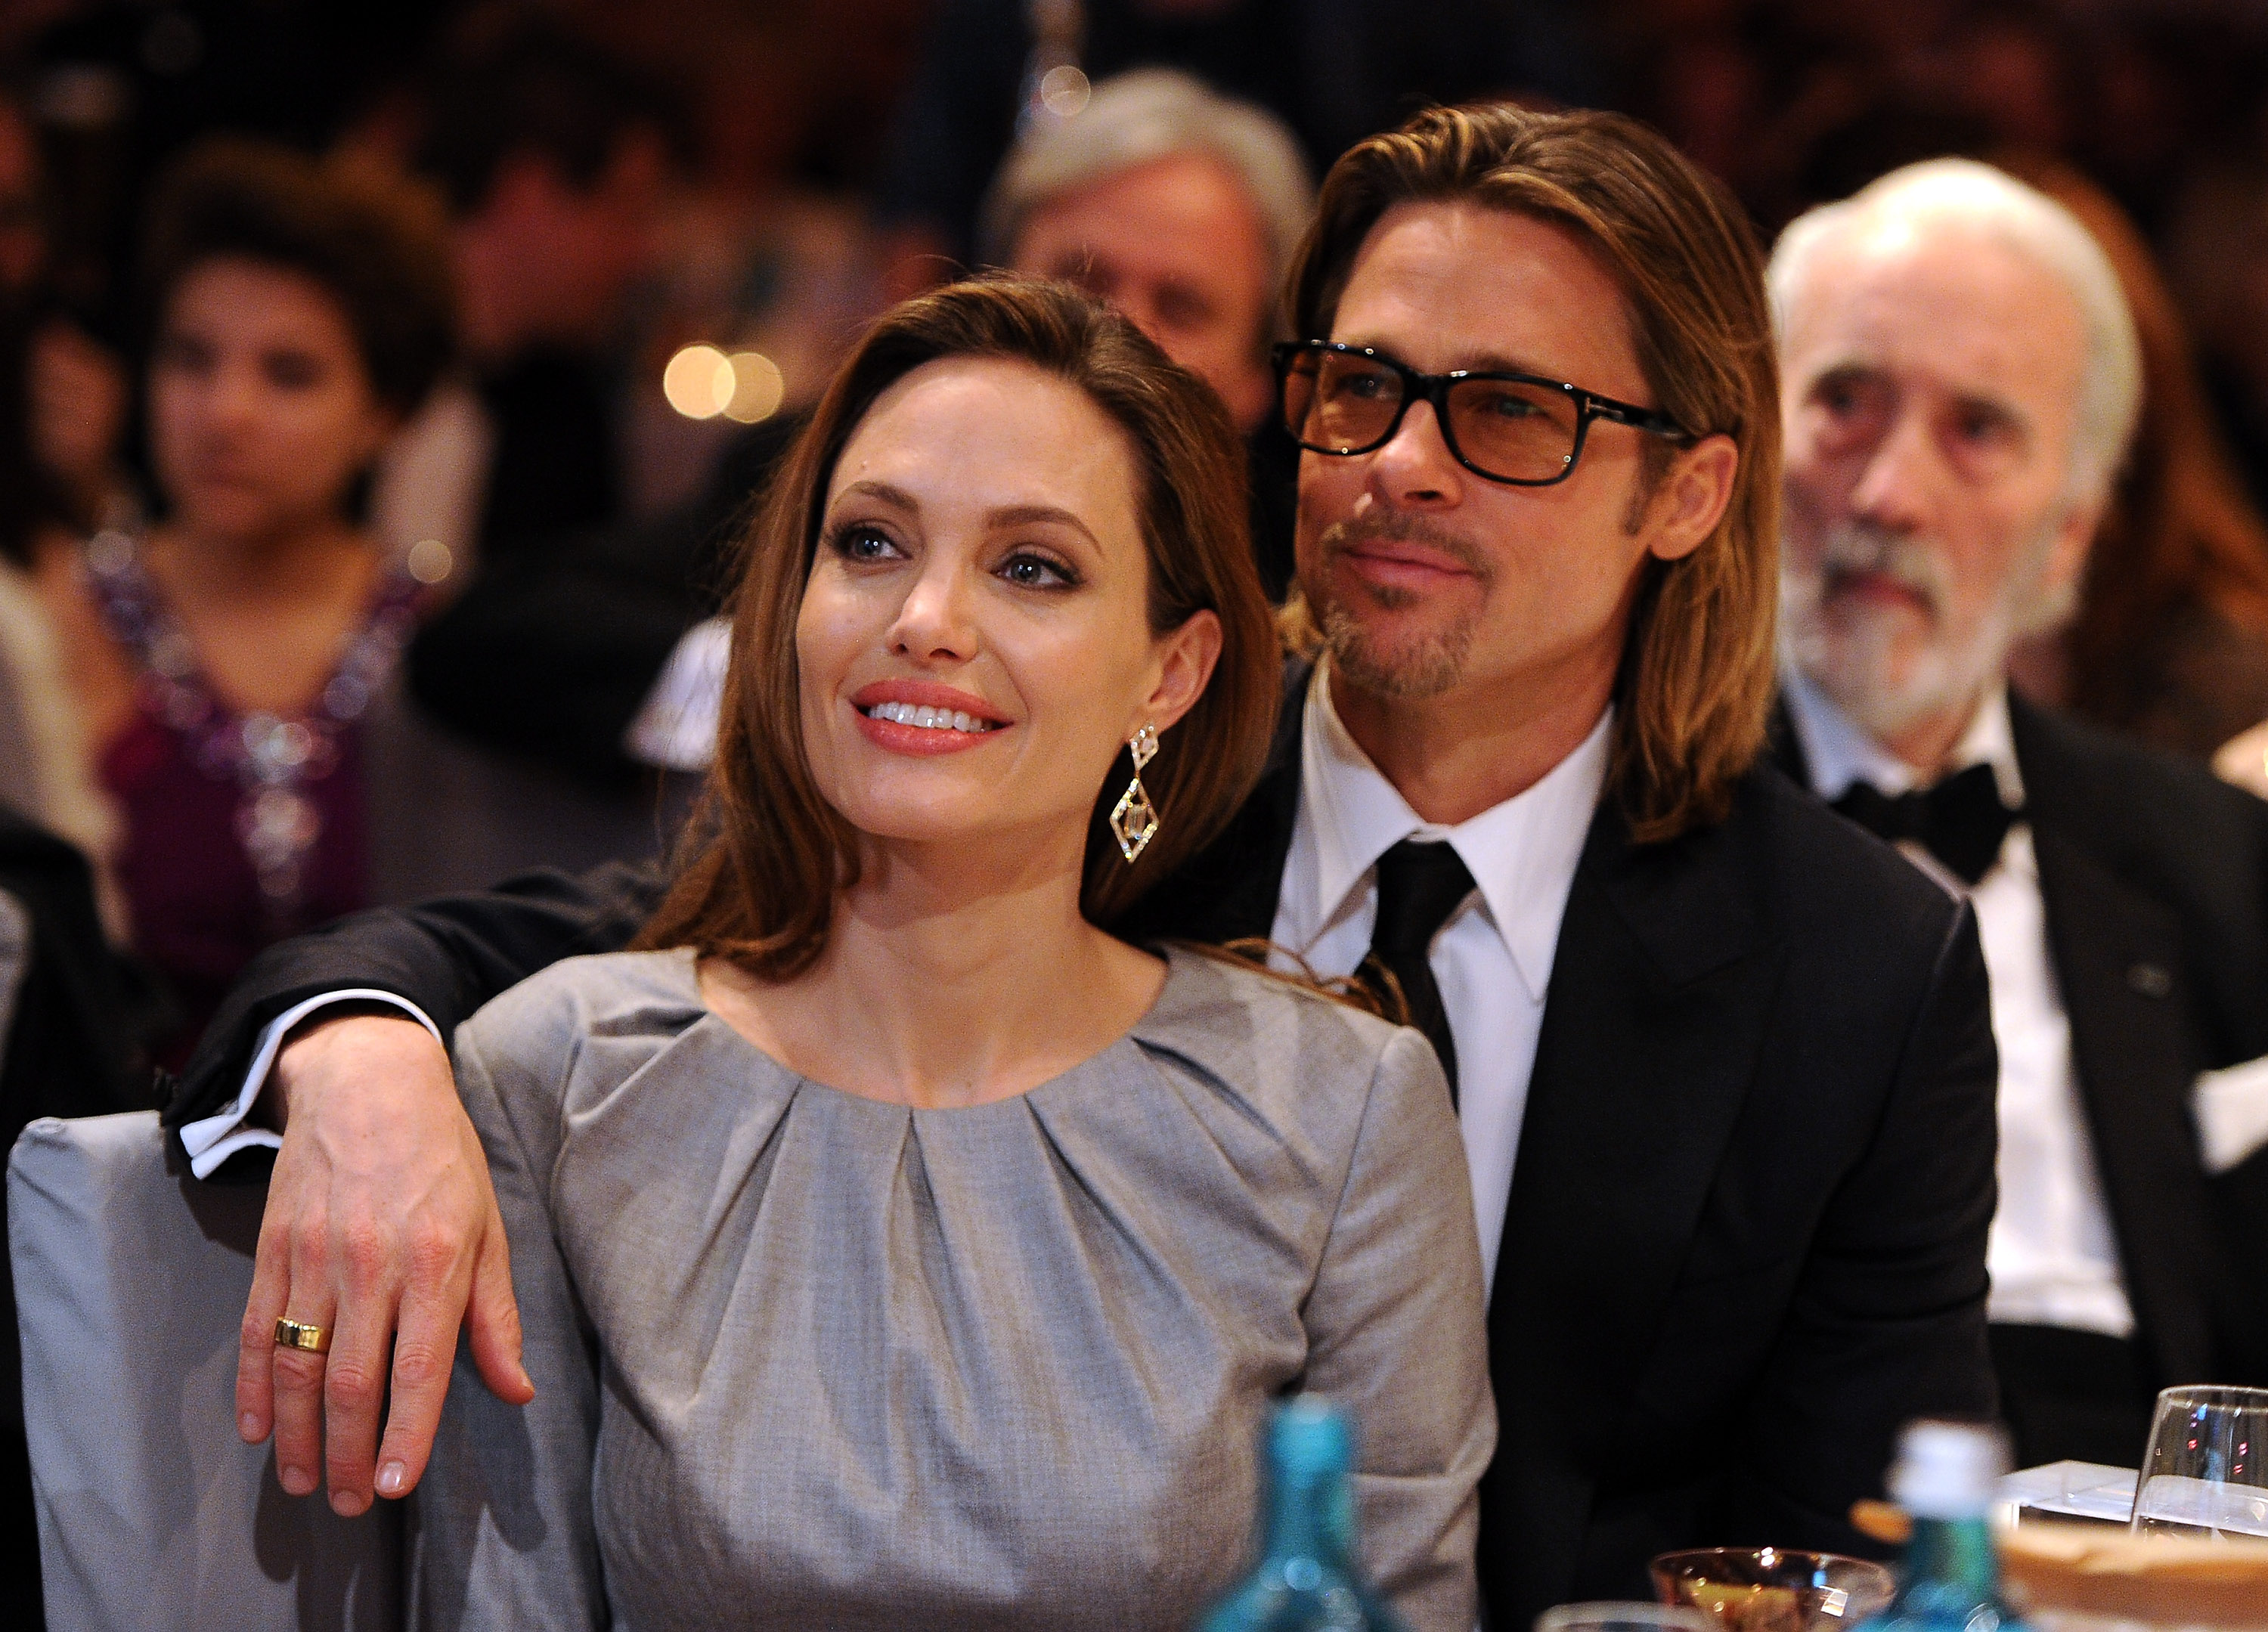 Angelina Jolie has addressed her divorce from Brad Pitt for the first time ever, and in the most cryptic way